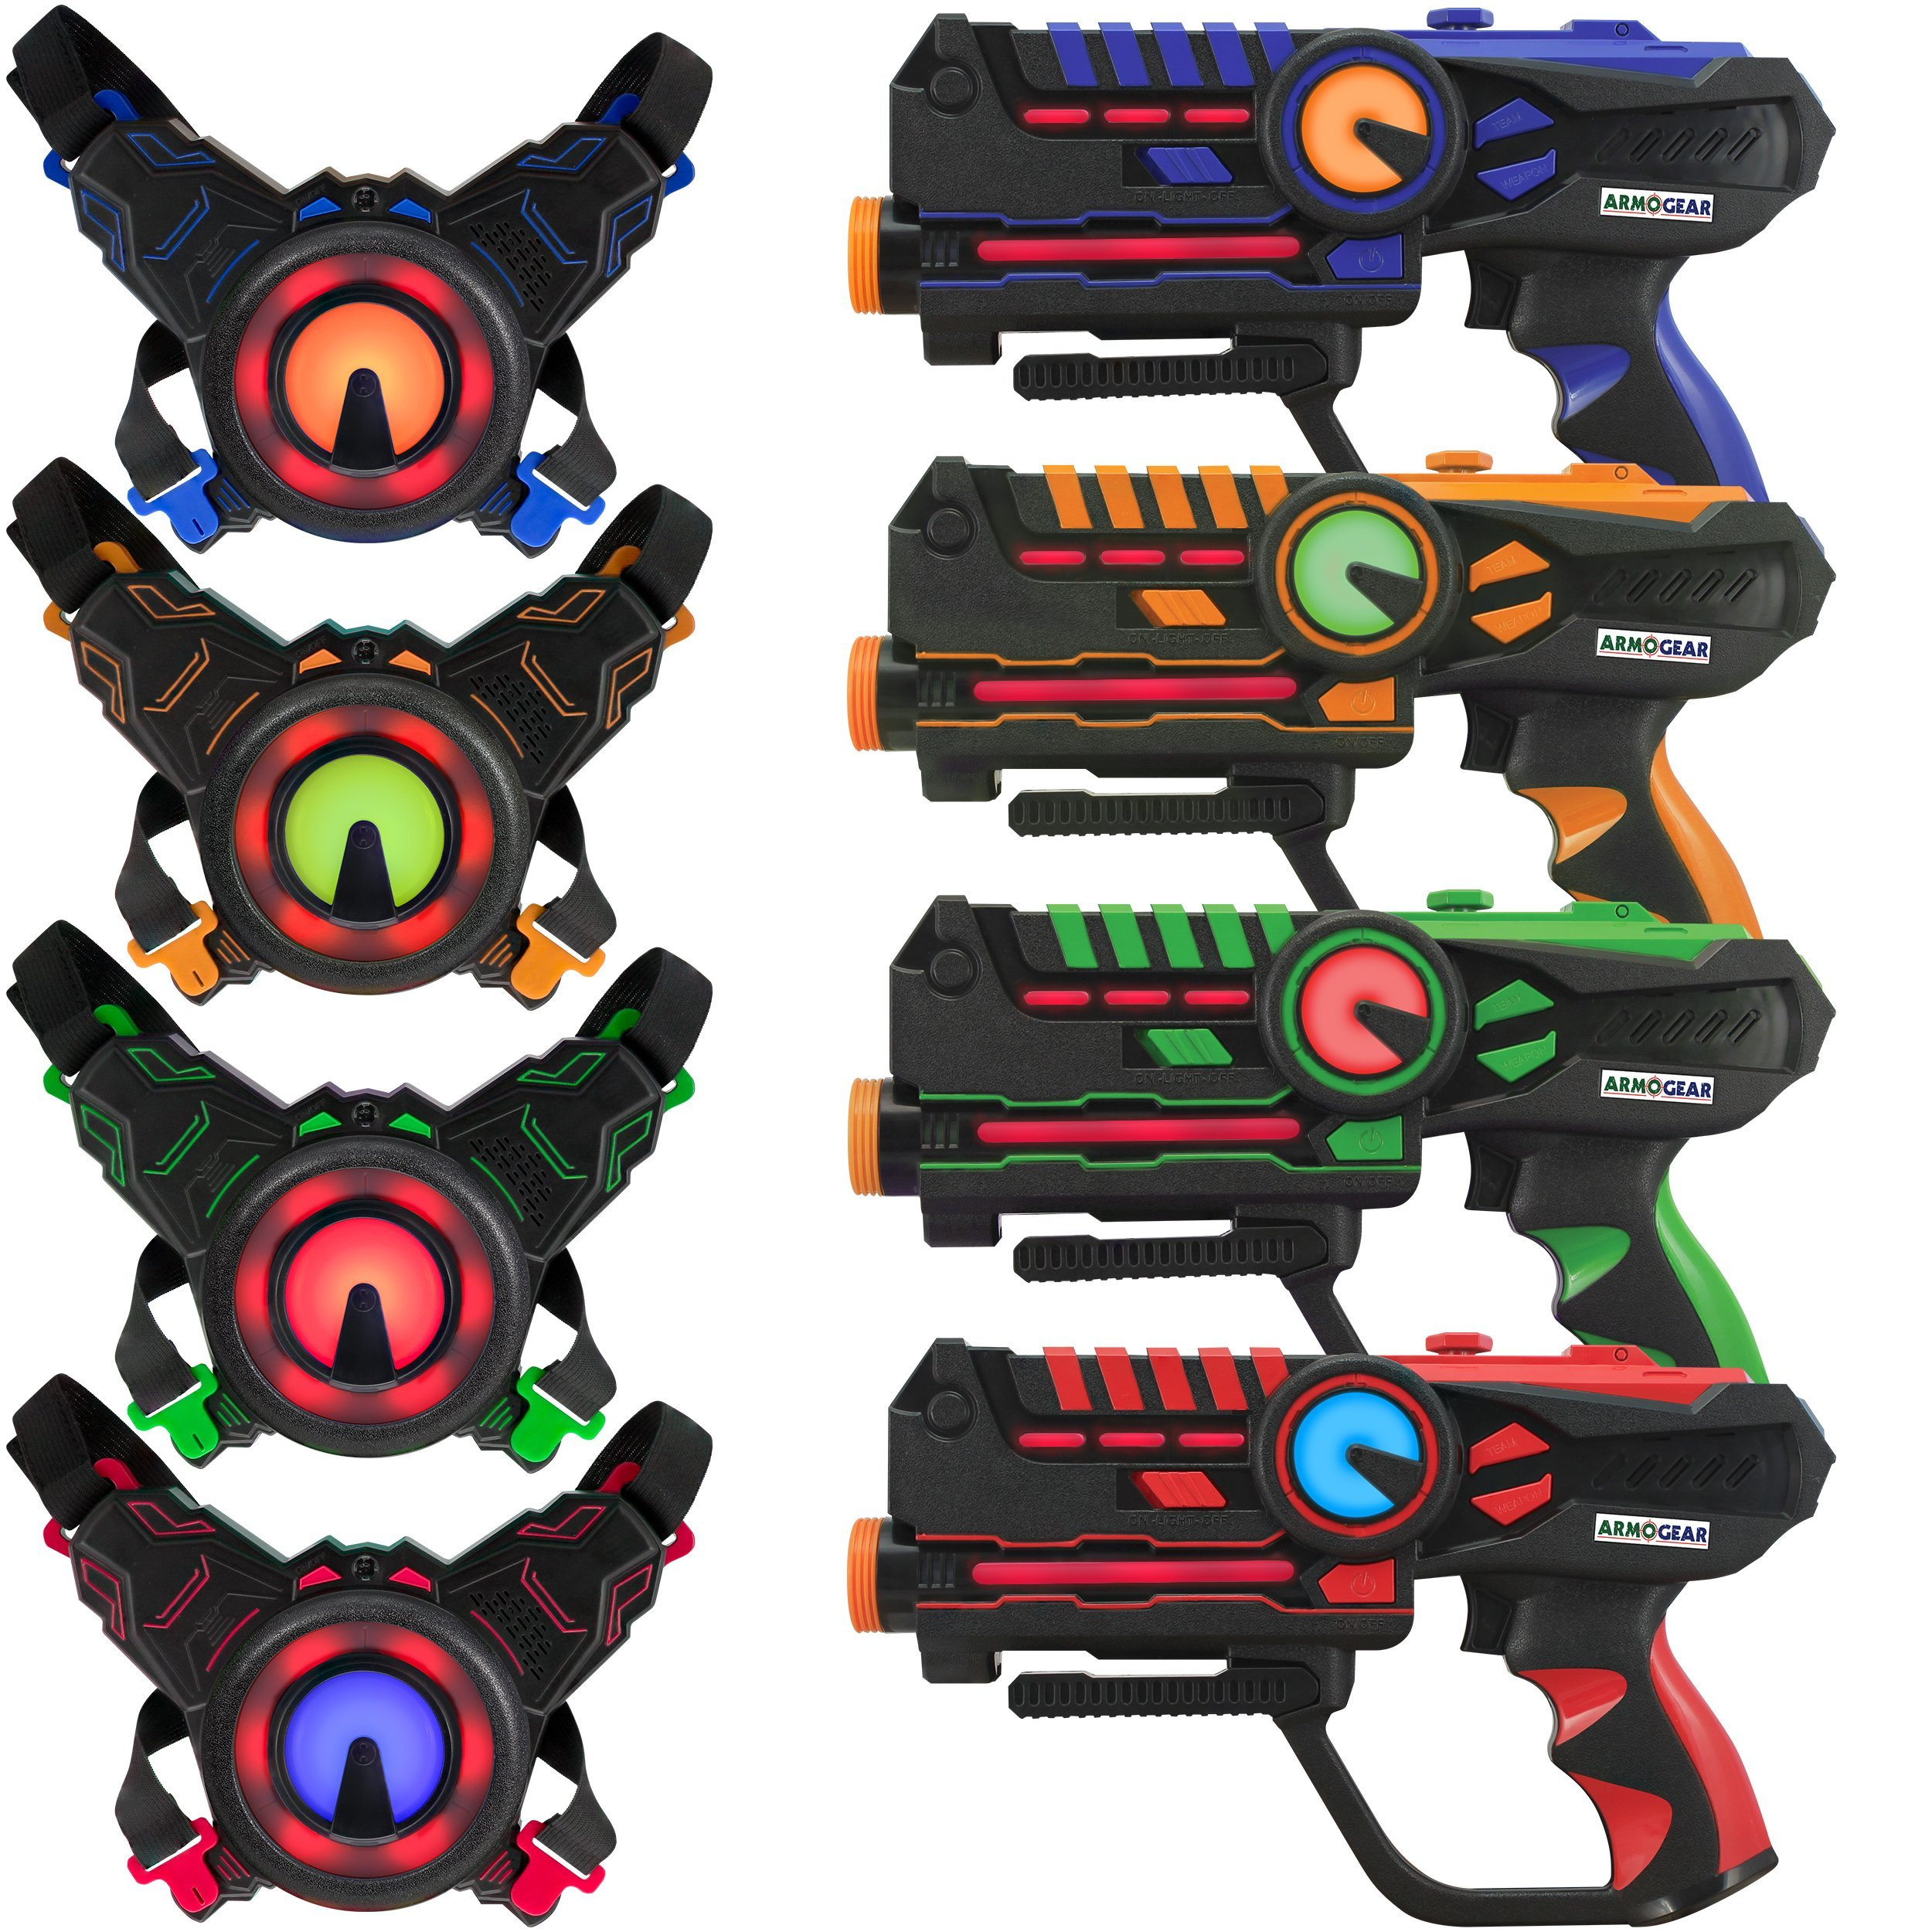 ArmoGear Infrared Laser Tag Guns and Vests - Laser Battle Mega Pack Set of 4 - Infrared 0.9mW (Renewed)